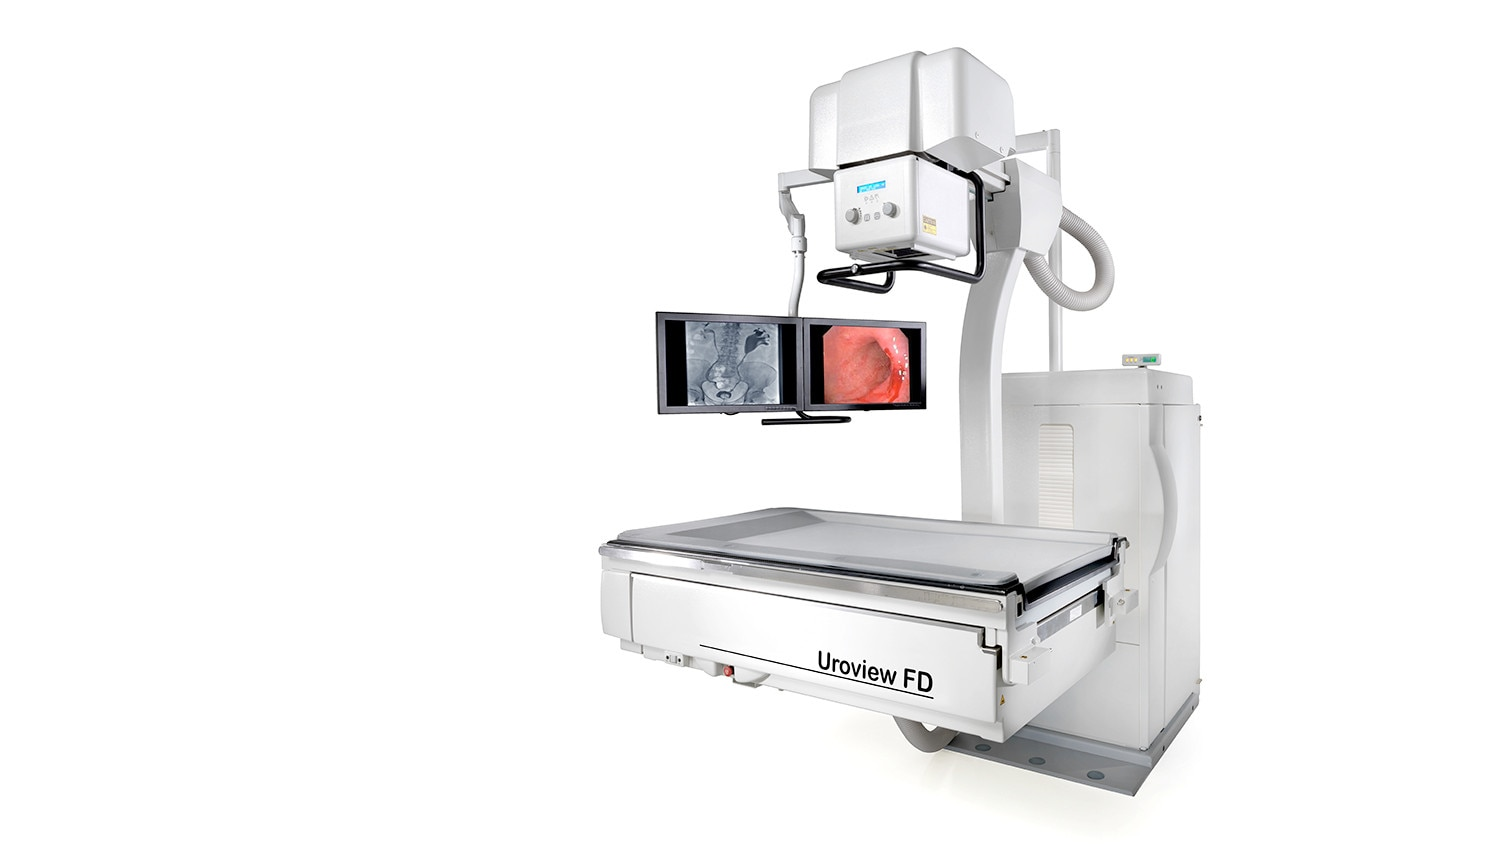 product-product-categories-surgical-imaging-uroview fd-uroview fd_2.jpg